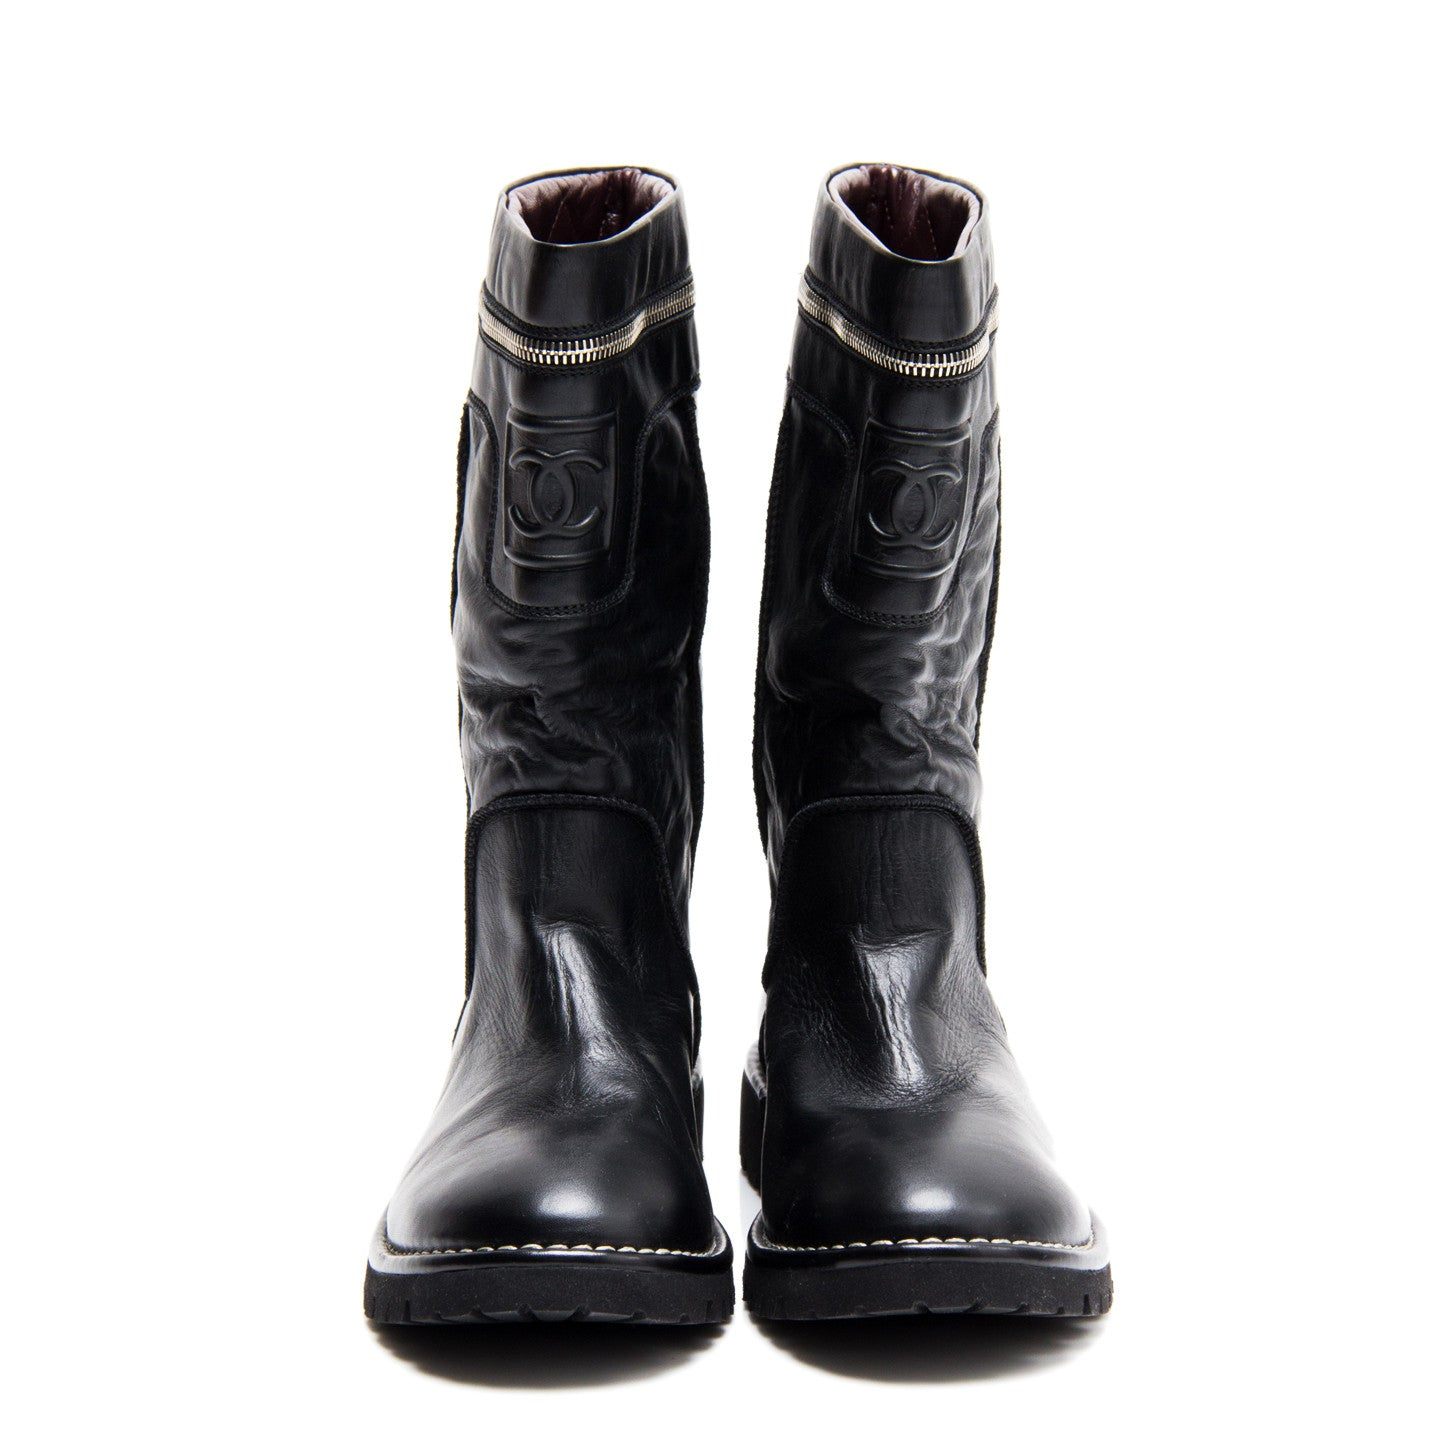 Find an authentic preowned Chanel Moto Boots With Silver Zipper, size 40 (Italian) at BunnyJack, where every sale triggers a charity donation.